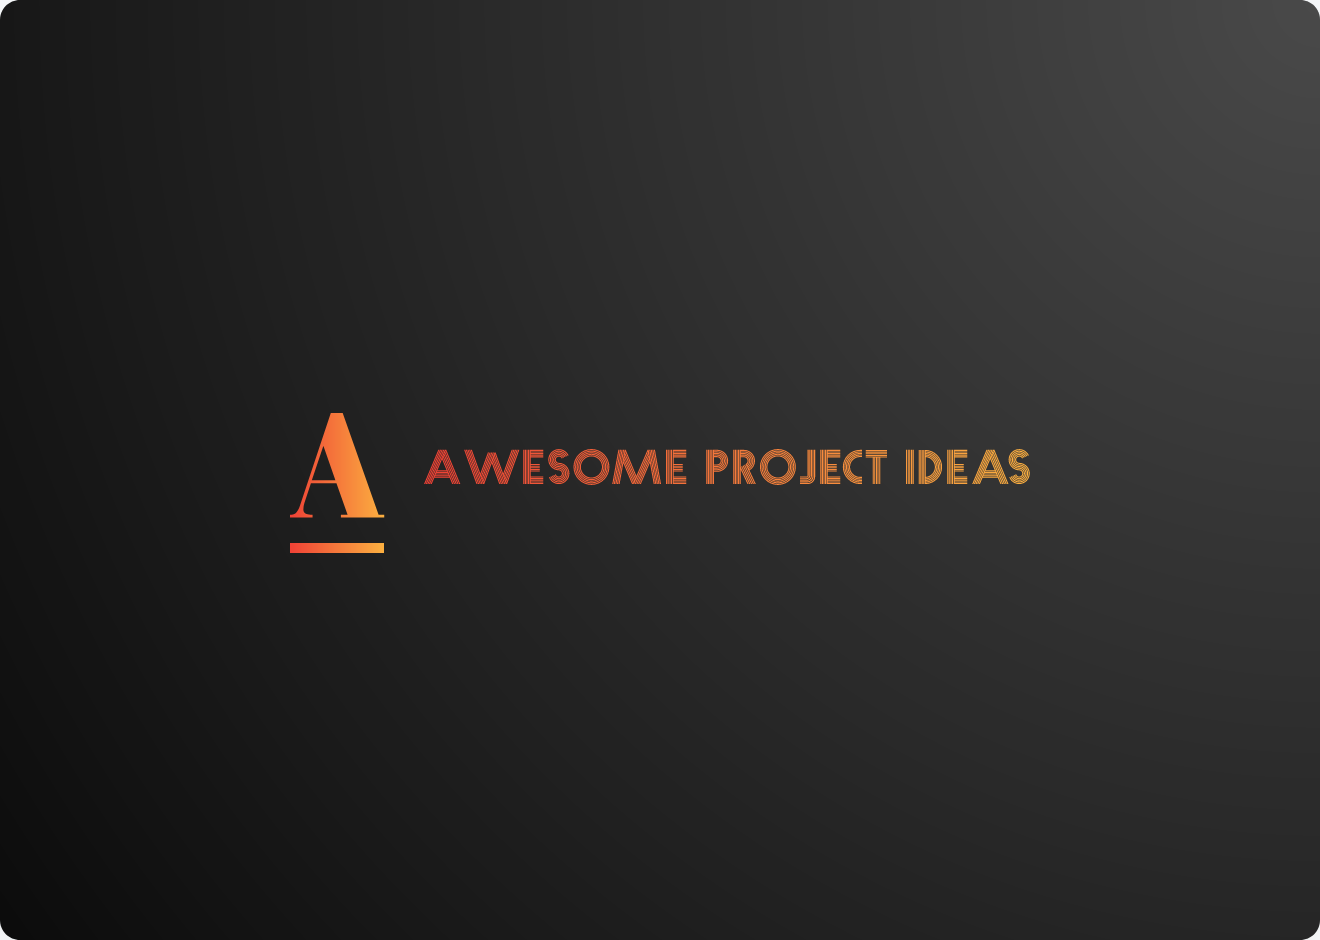 awesome-project-ideas